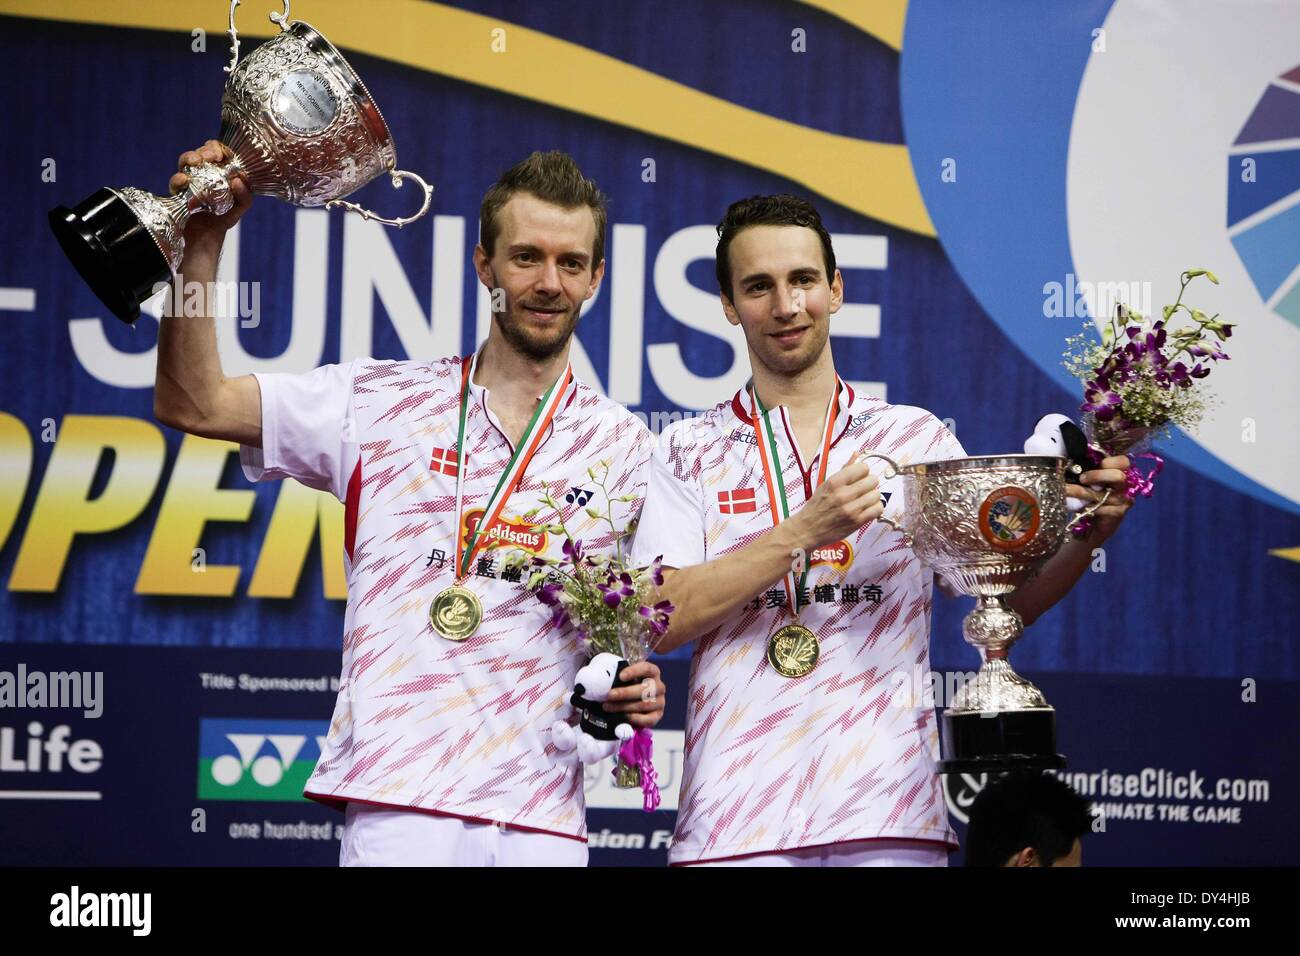 New Delhi India 6th Apr 2014 Mathias Boe L and Carsten